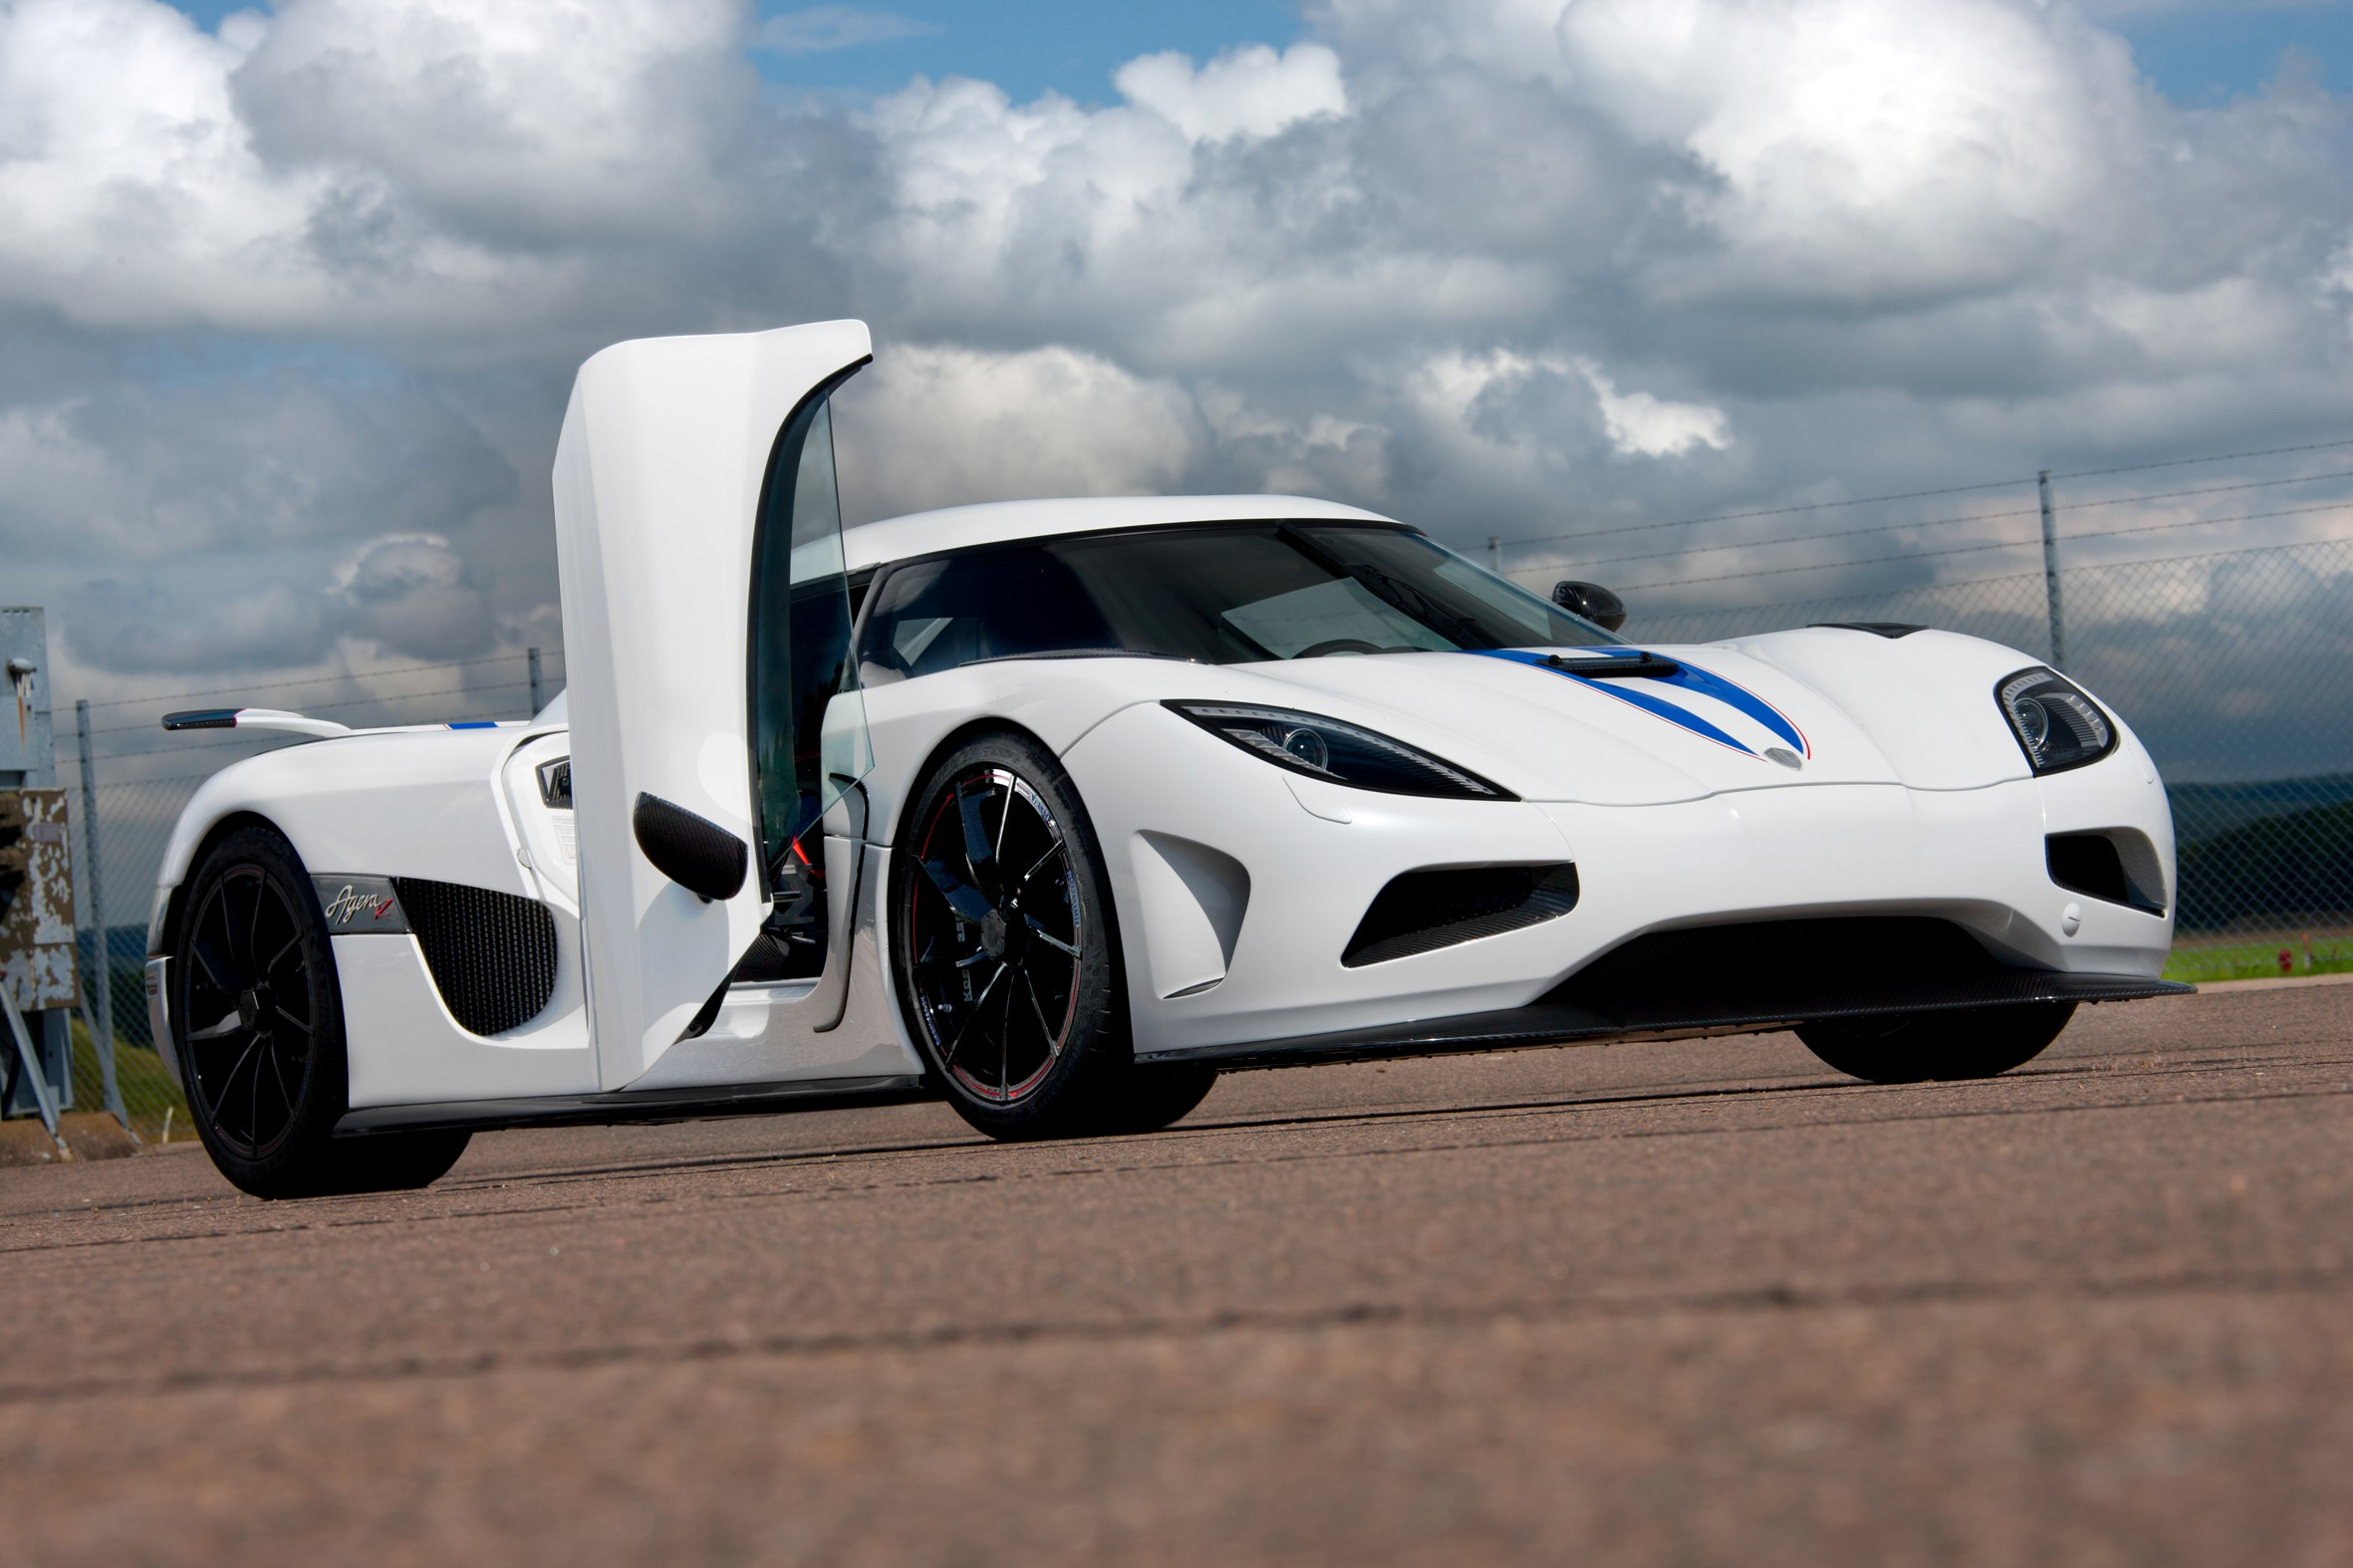 Koenigsegg Agera R Goes On Sale In U.S.